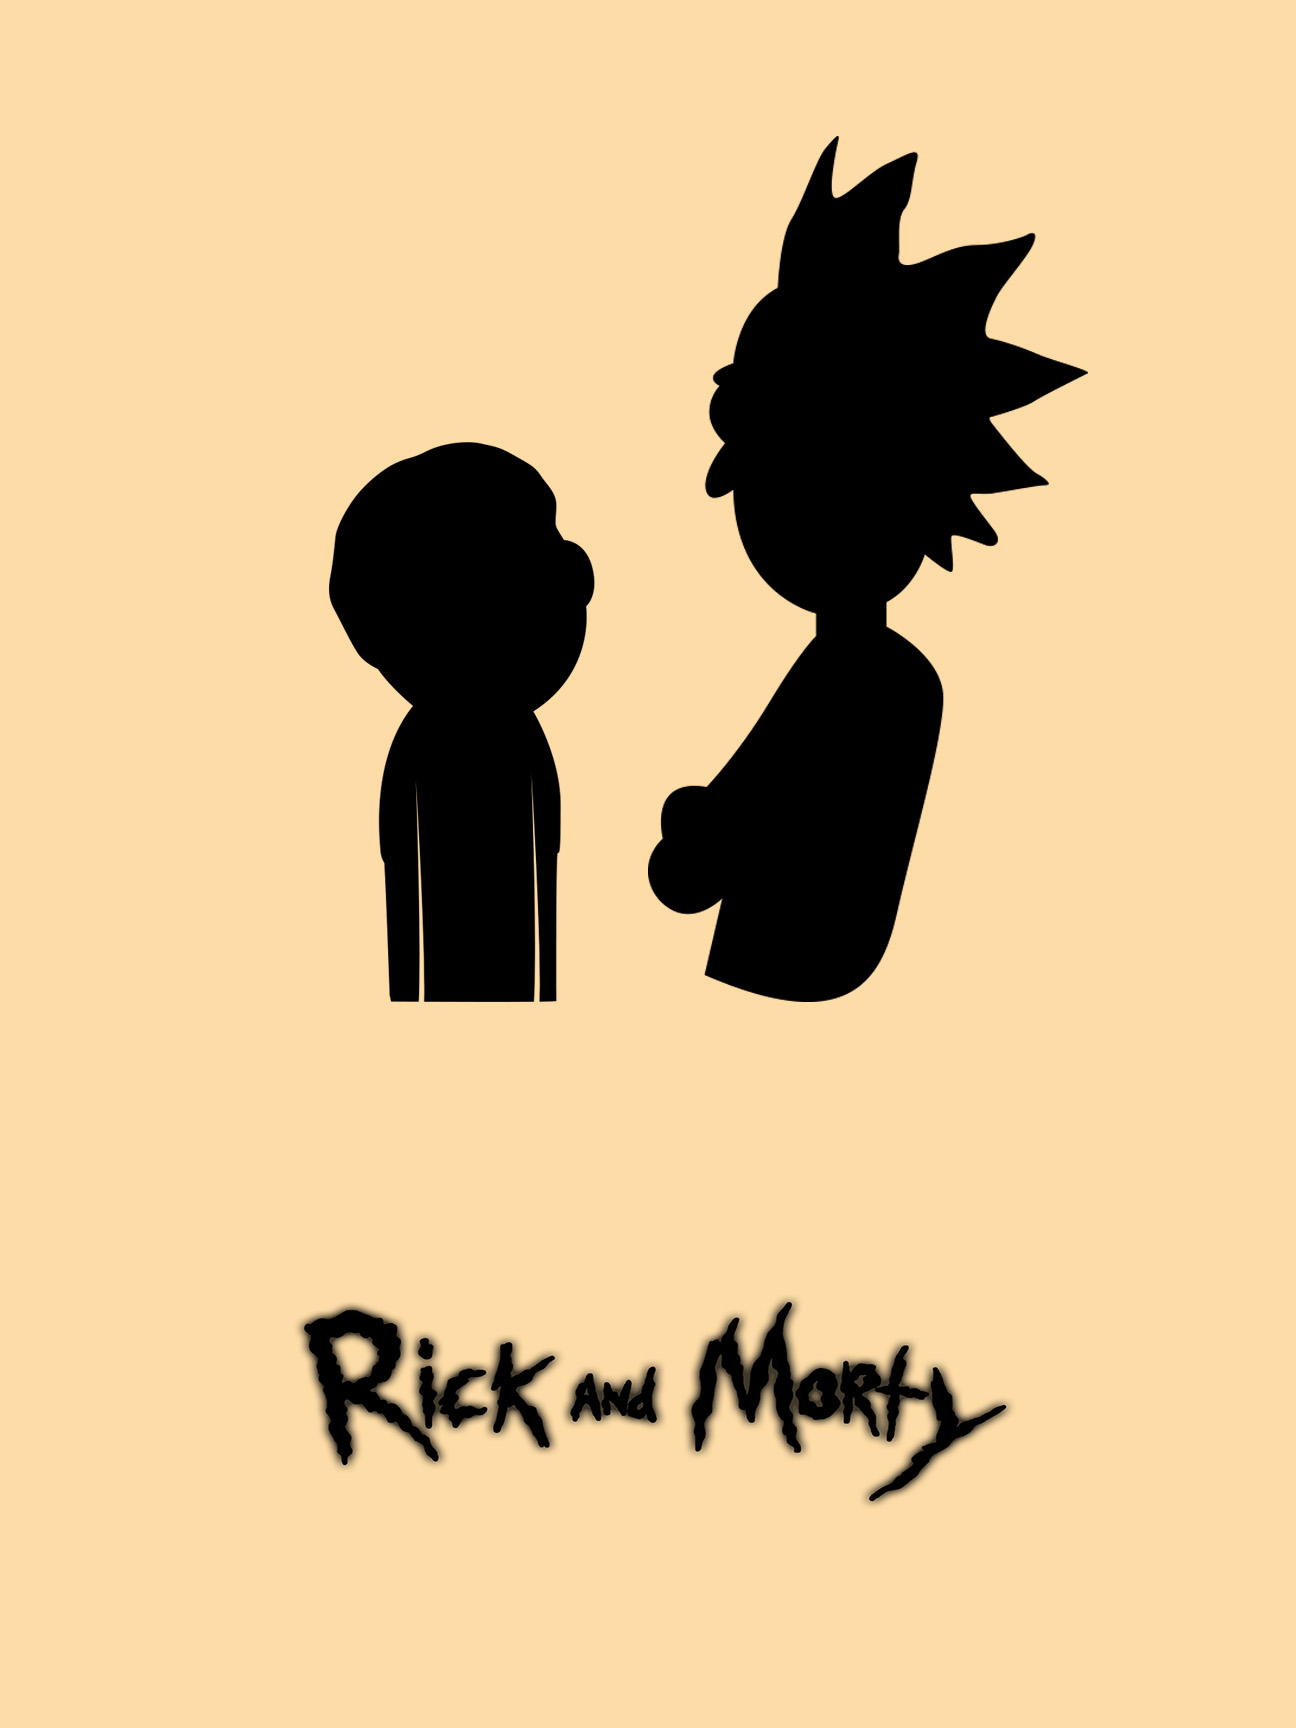 1296x1728 Feedback] I'M Working On A Rick And Morty Minimalistic Poster. How